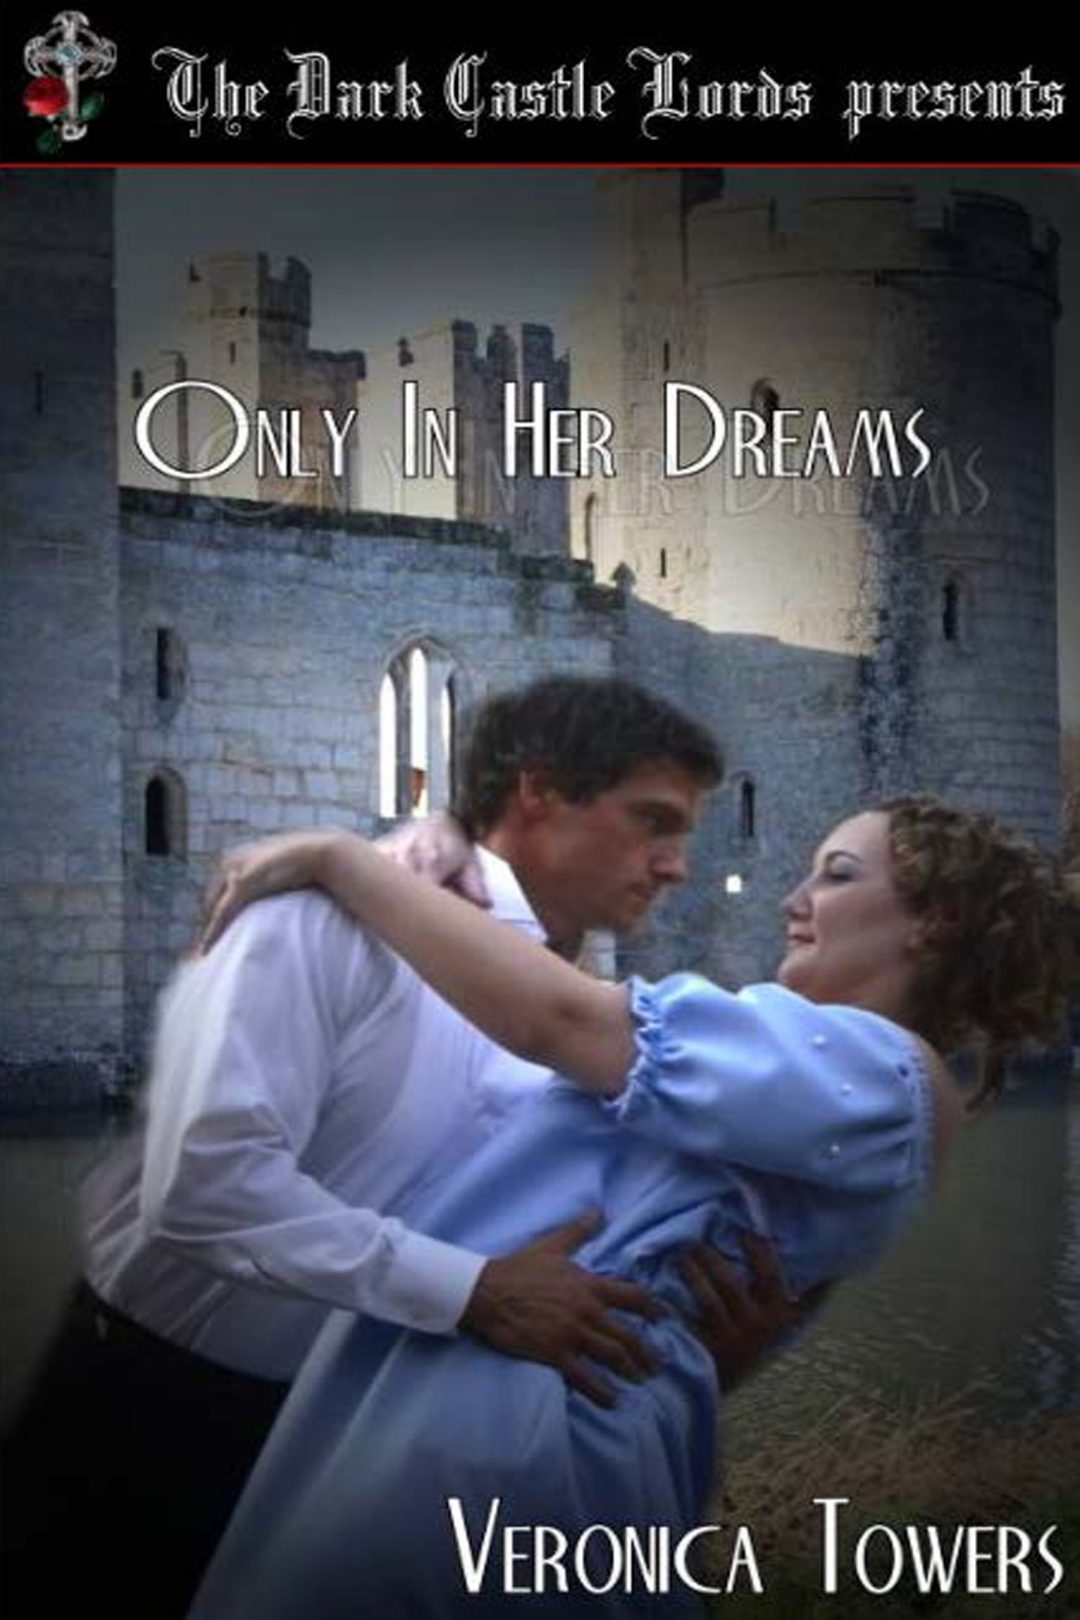 Only in Her Dreams by Veronica Towers